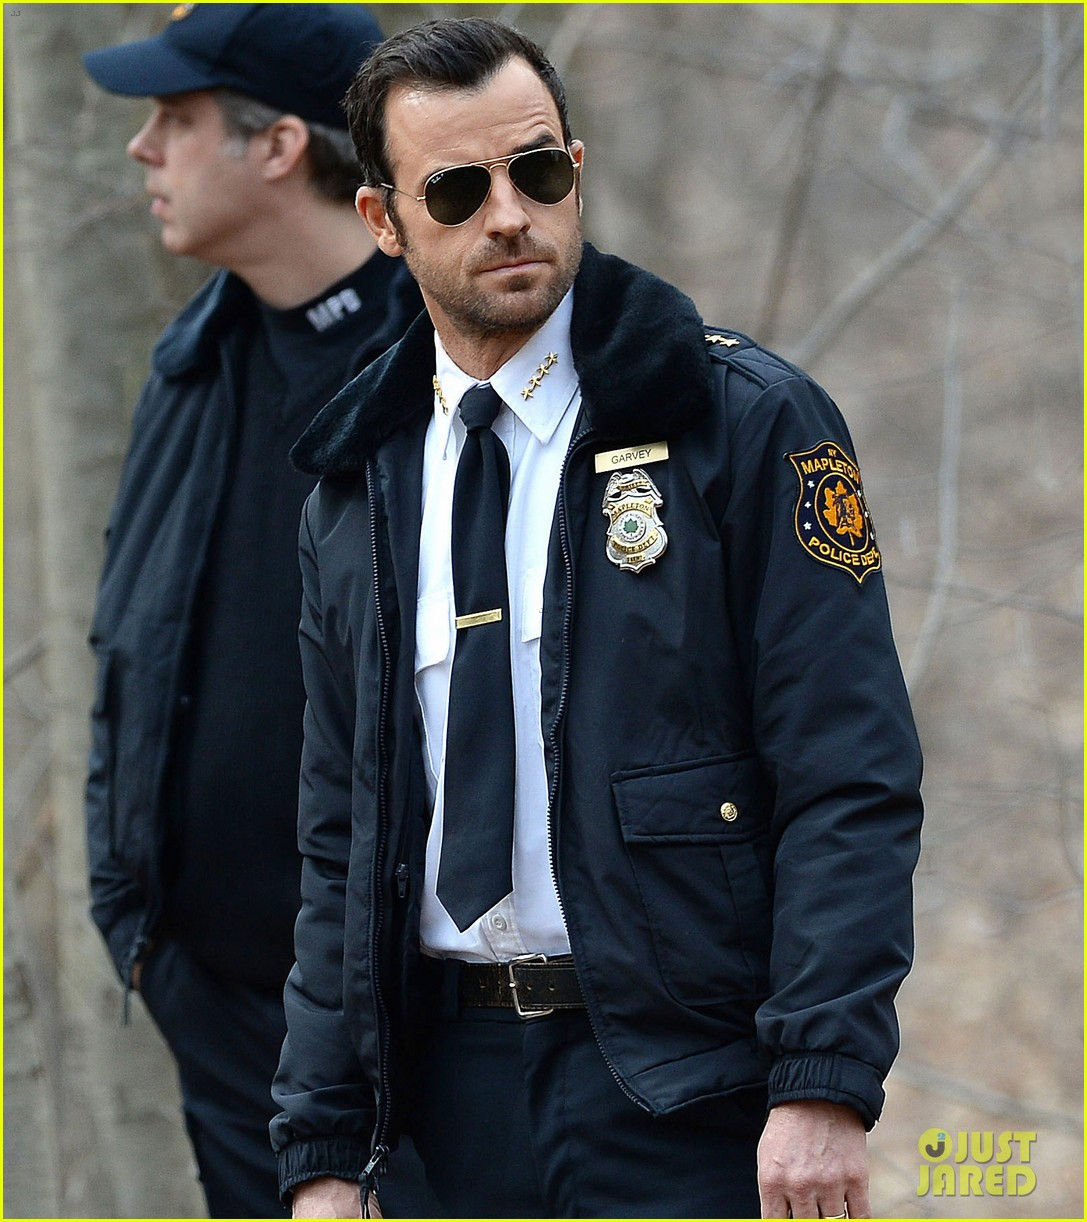 justin theroux looks all kinds of good in his police uniform for the leftovers 04